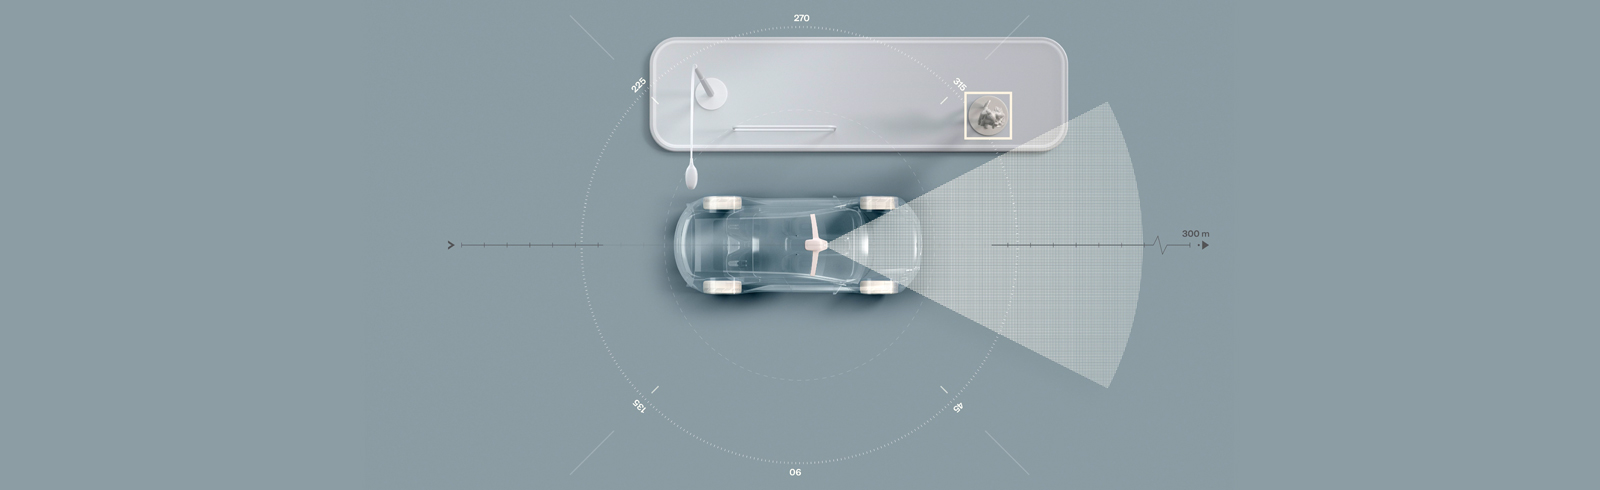 Next generation pure electric Volvo comes with LiDAR technology and AI-driven super computer as standard